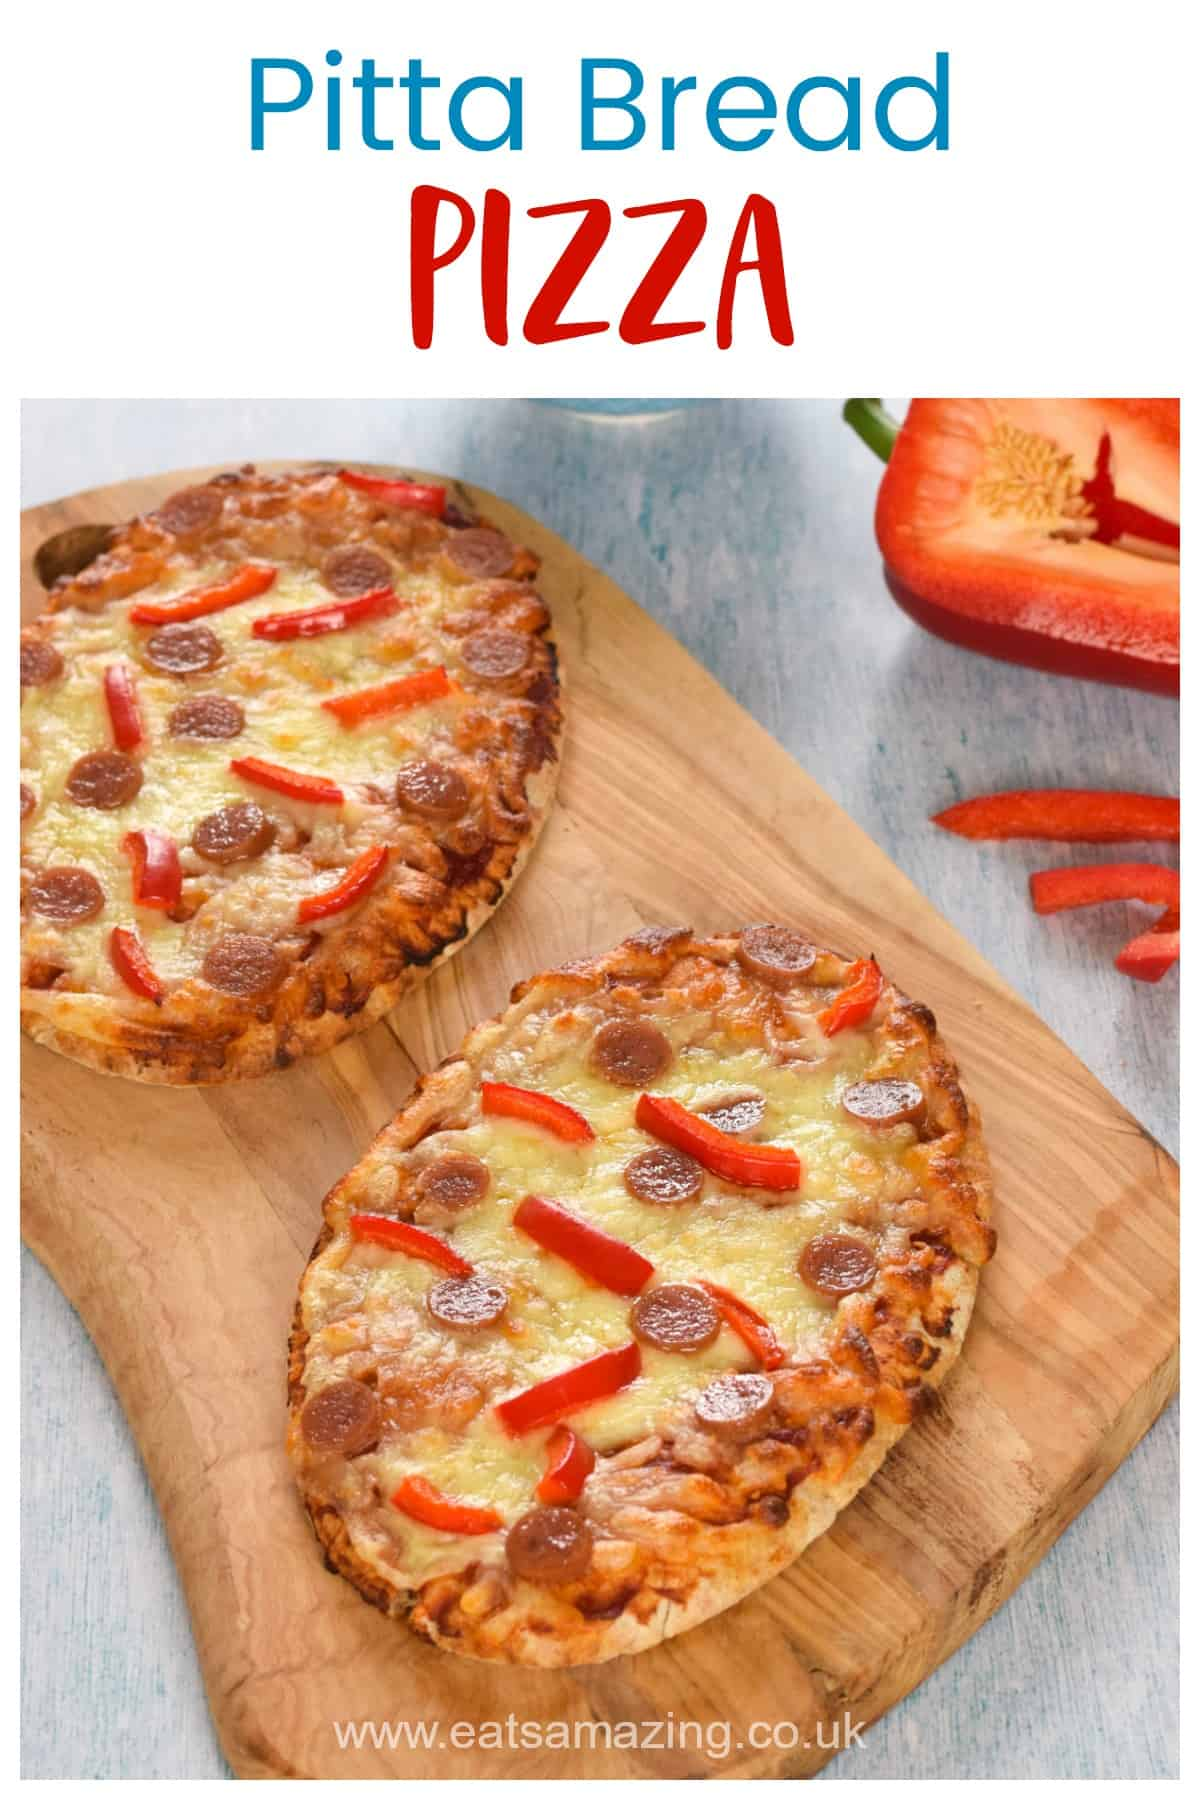 Quick and easy pitta bread pizza - this easy recipe for kids makes a great lunch or midweek dinner